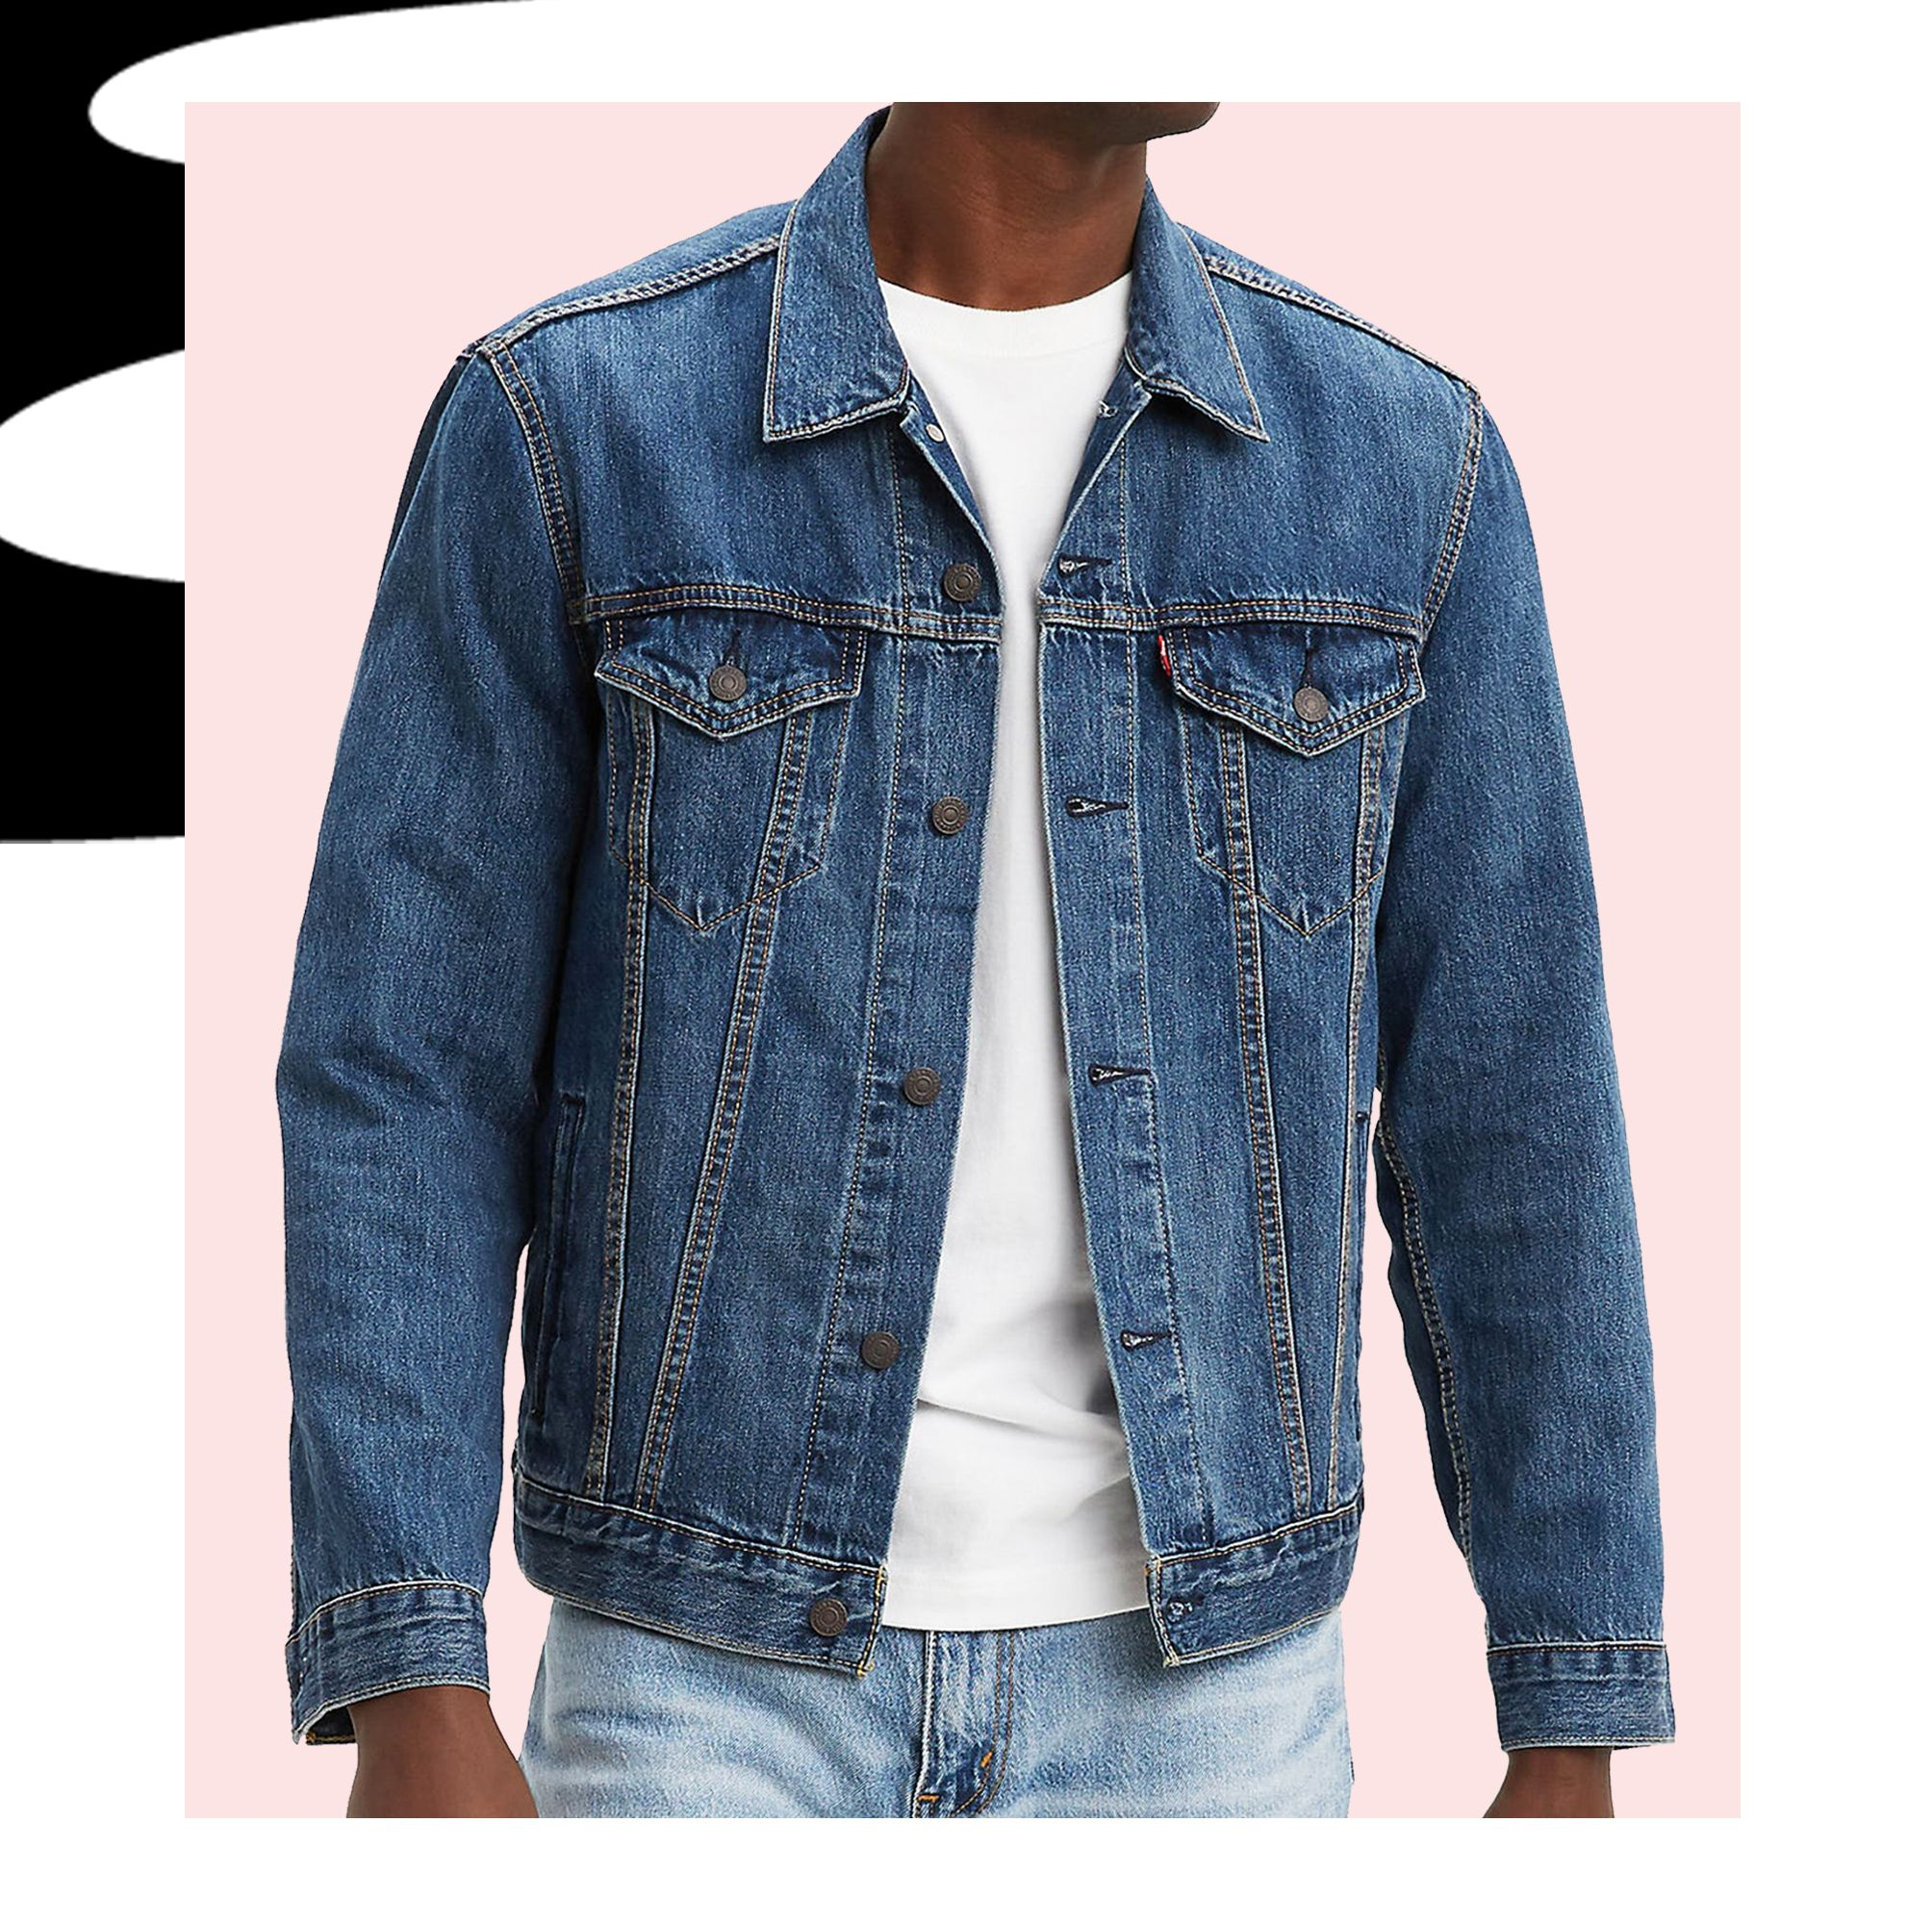 The 25 Best Denim Jackets to Buy Now and Wear Always